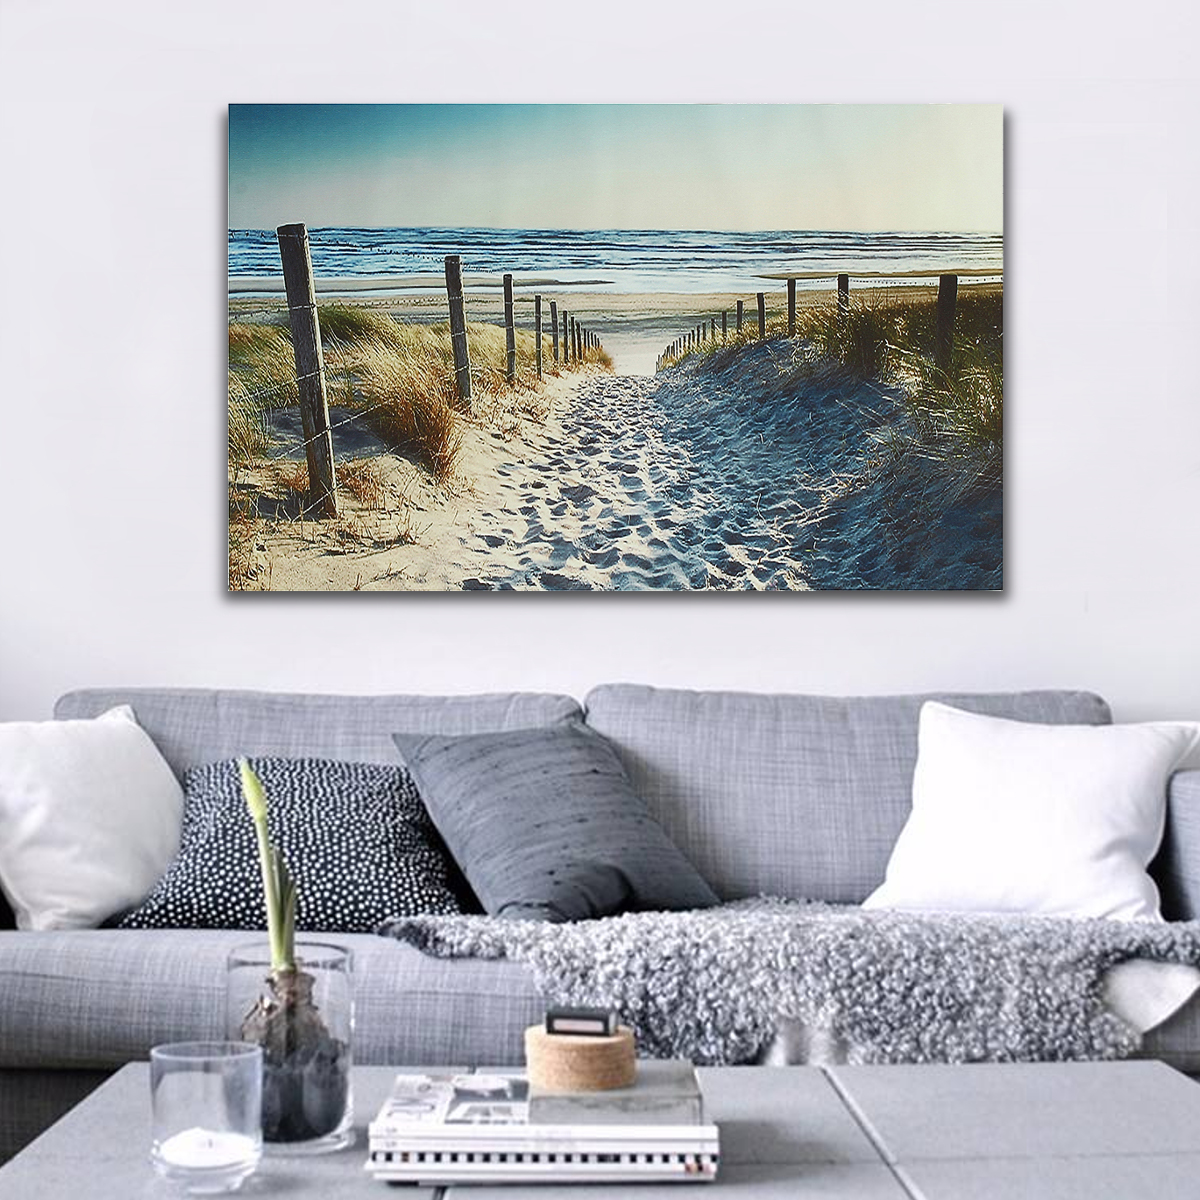 Ocean Beach Footprint Canvas Prints Paintings Wall Art Home Decor Unframed